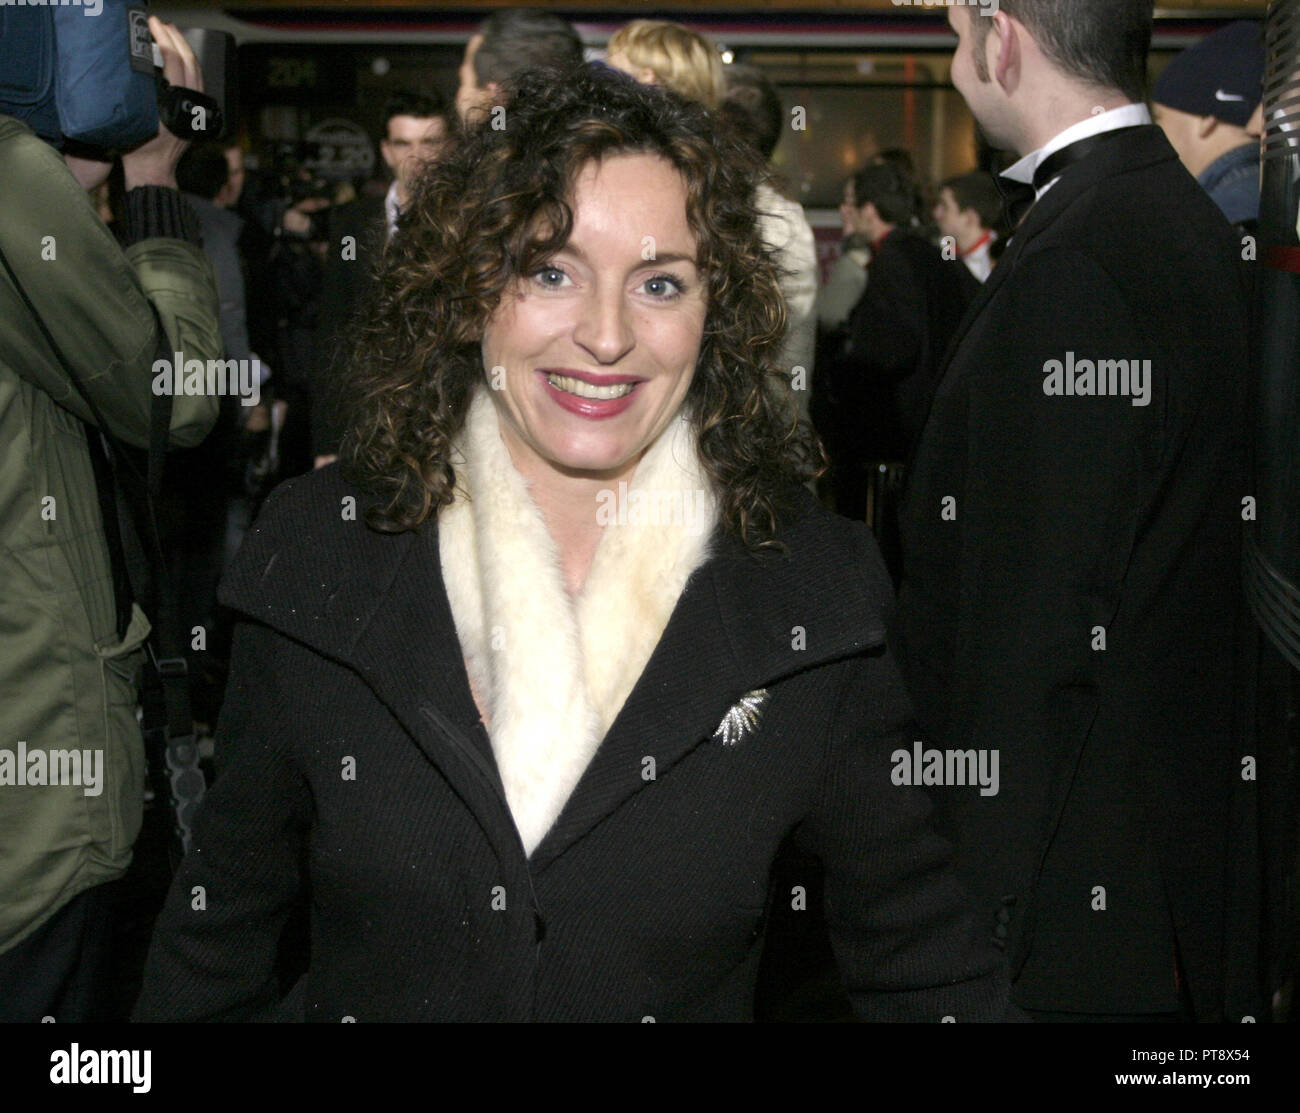 Gillian Berrie is a well known Scottish award winning, successful, film producer and is responsible for setting up the Sigma production company. - Stock Image